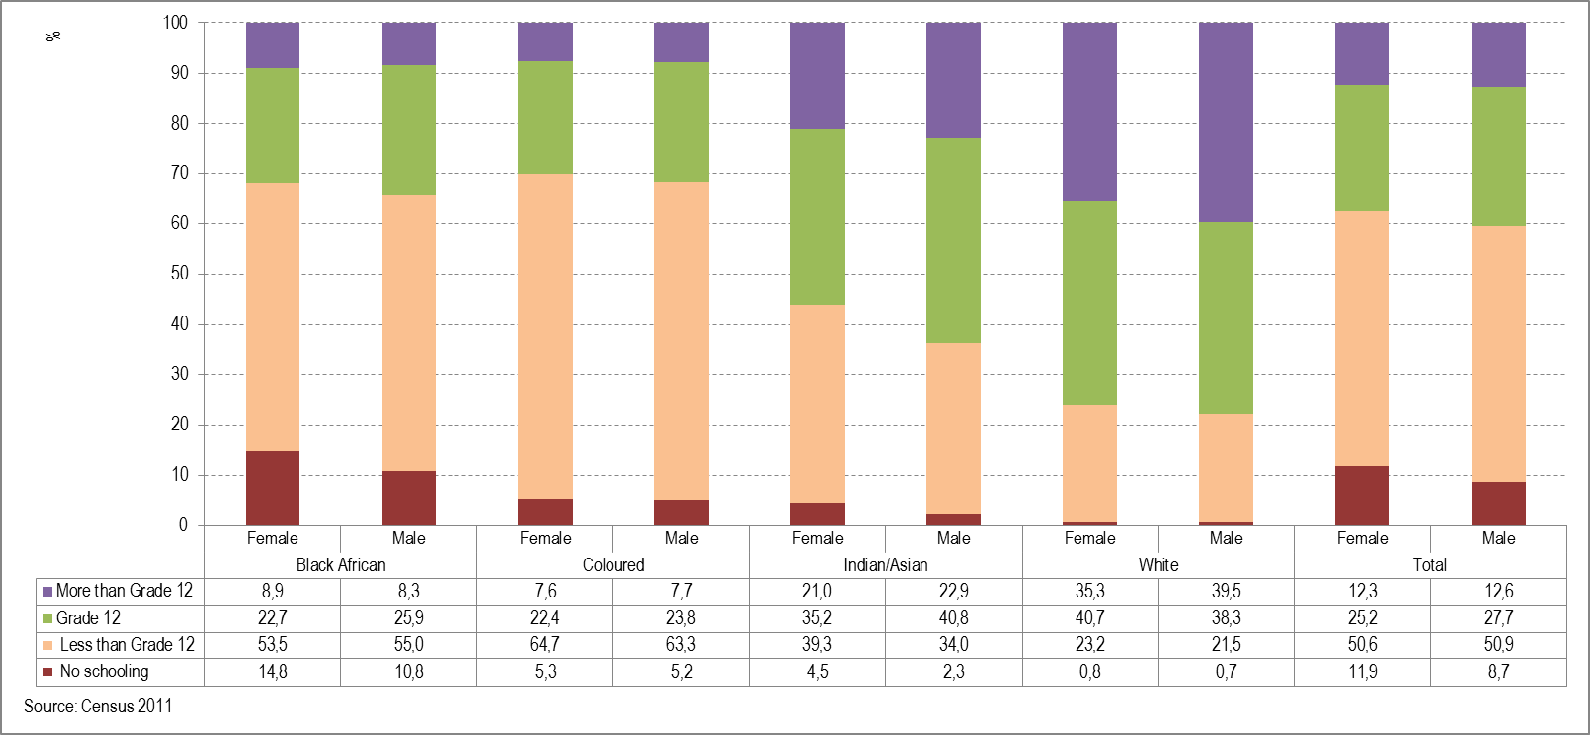 EDUCATION Educational achievement Figure 16: Percentage distribution of women and men aged 25 years and above for each population group by highest level of education, 2011 Figure 16 shows that the